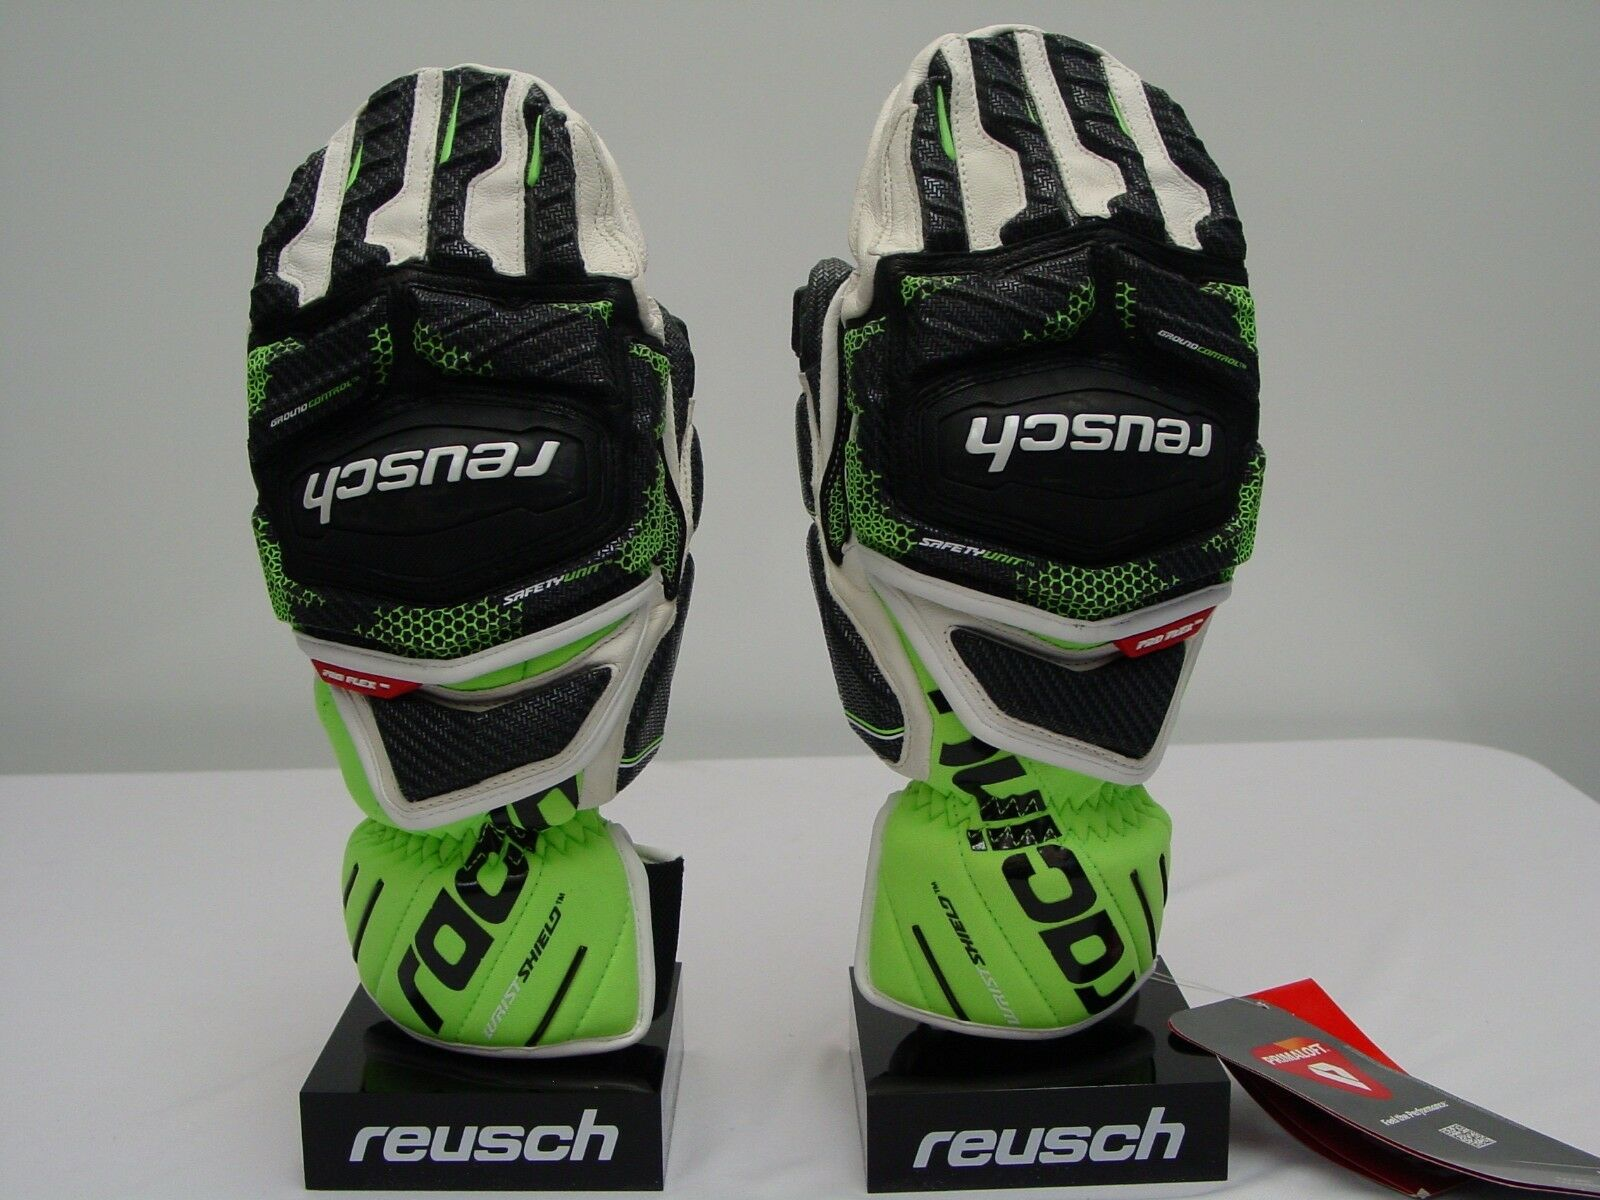 Reusch RACING ALL Leather RaceTec 16 GS Grand Slalom Ski Mittens 4611411S Small